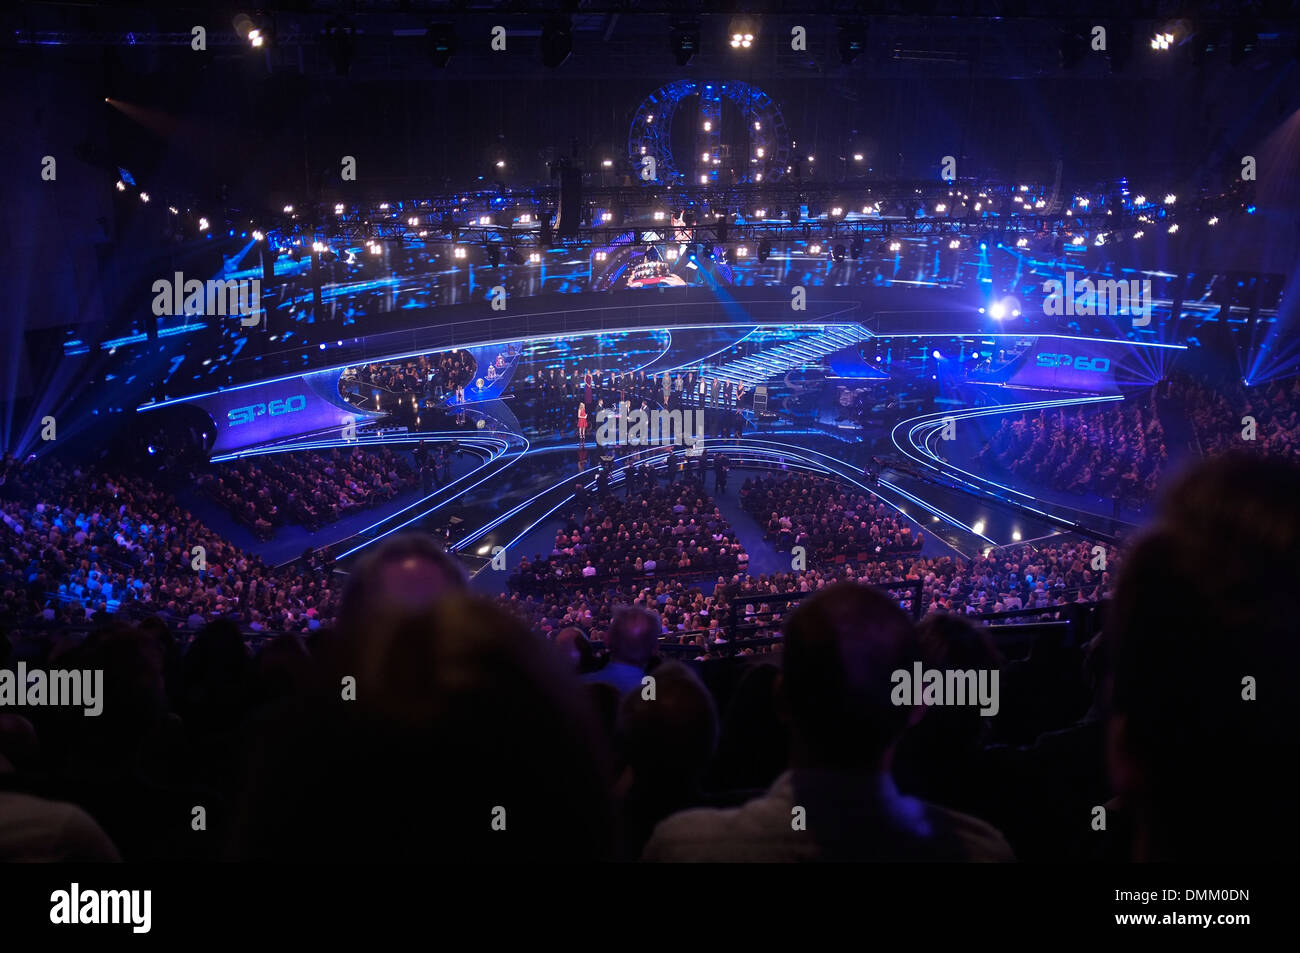 Leeds First Direct Arena hosting the BBC's Sports Personality of the Year Awards 2013, showing Andy Murray receiving his award. - Stock Image